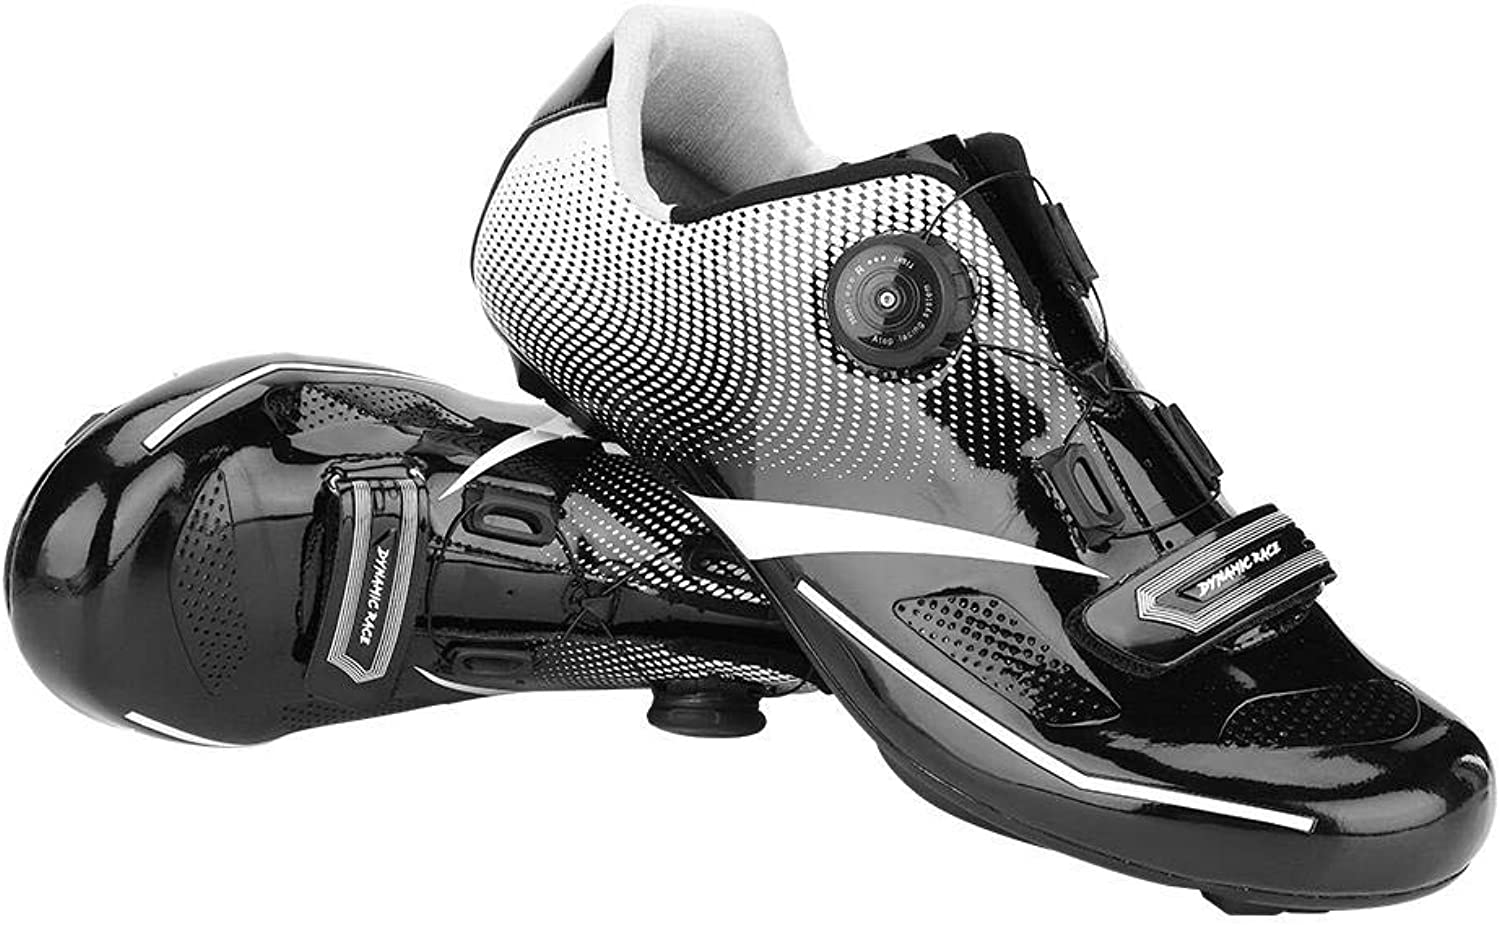 VGEBY1 Cycling shoes, Mountain Bike shoes Outdoor Bicycle Accessories